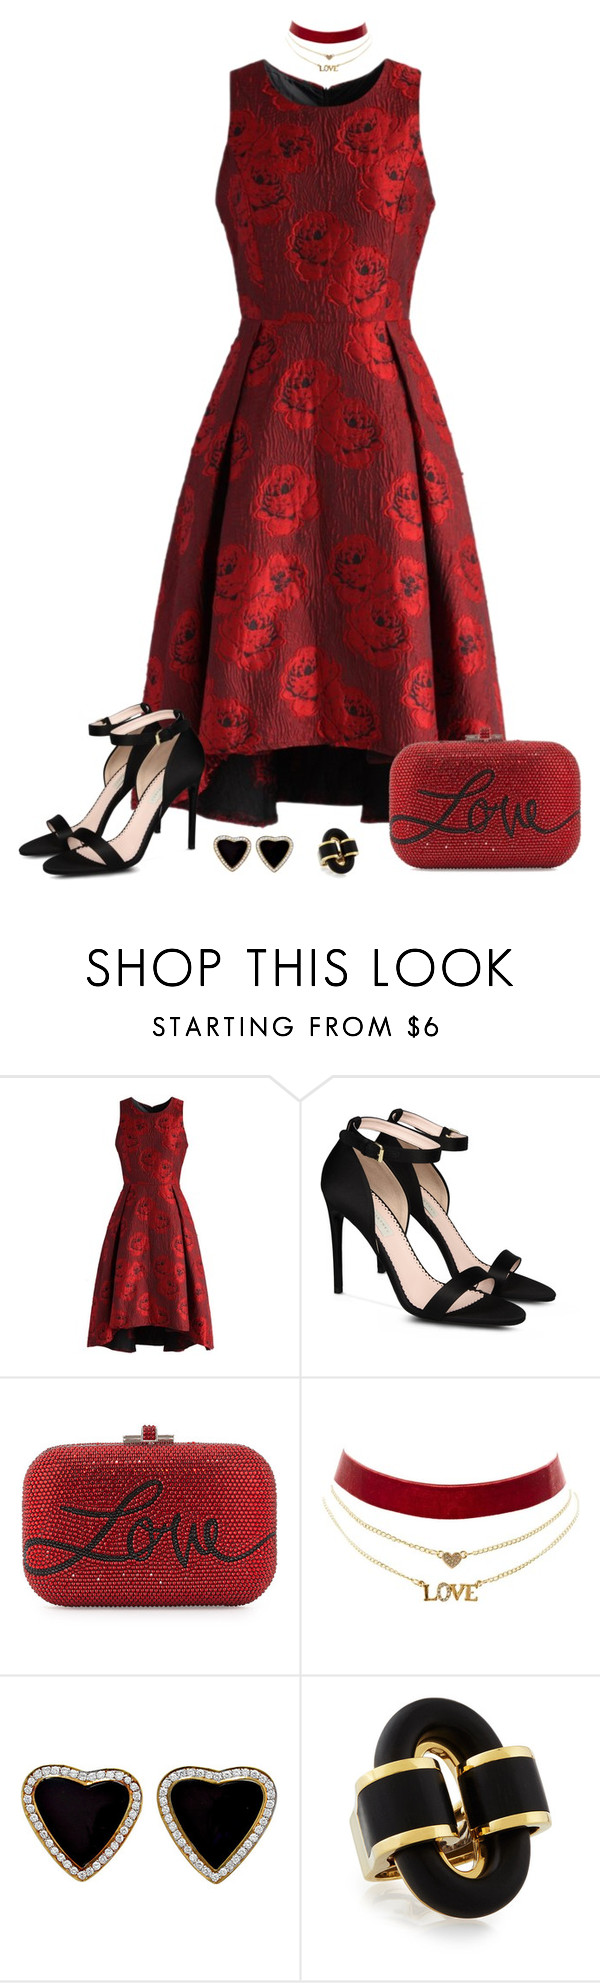 """""""Take me Home"""" by tuomoon ❤ liked on Polyvore featuring Chicwish, STELLA McCARTNEY, Judith Leiber, Charlotte Russe and valentinesday"""